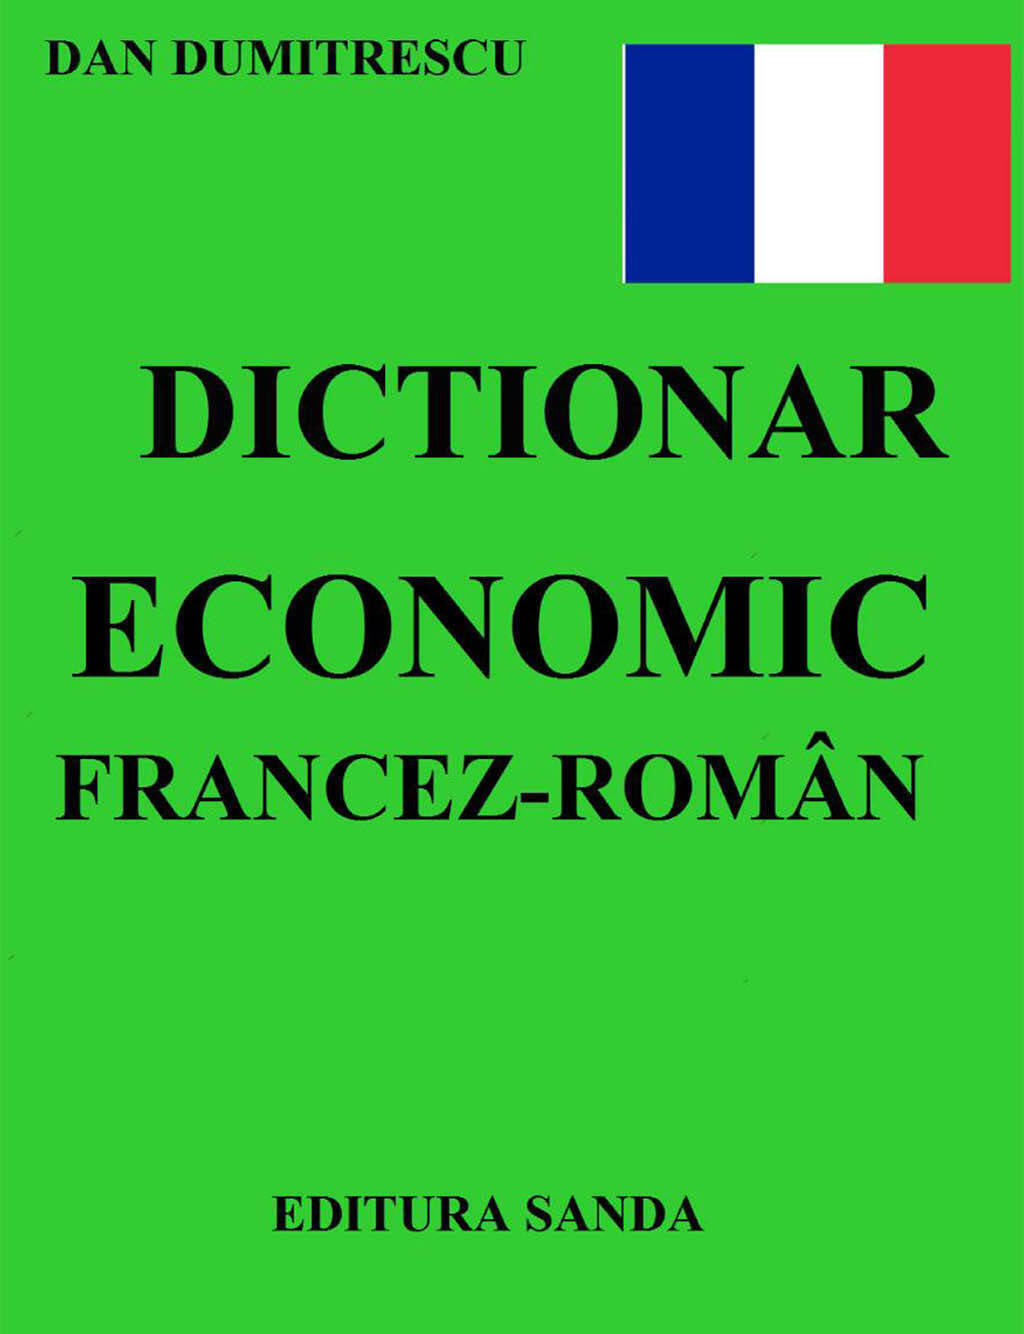 Dictionar economic Francez-Roman (eBook)